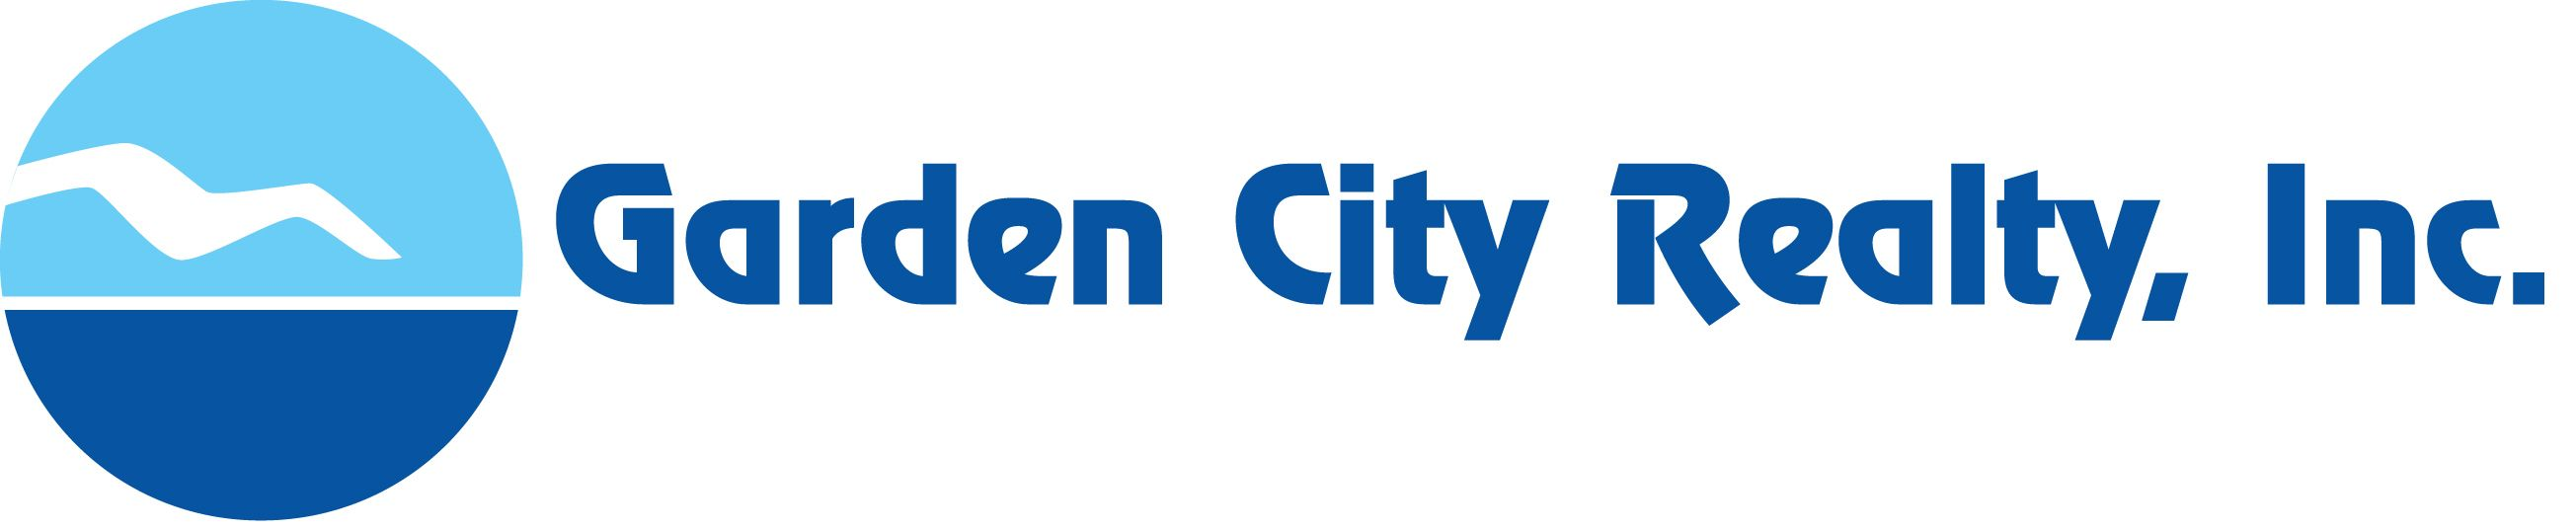 Garden City Realty, Inc. Logo